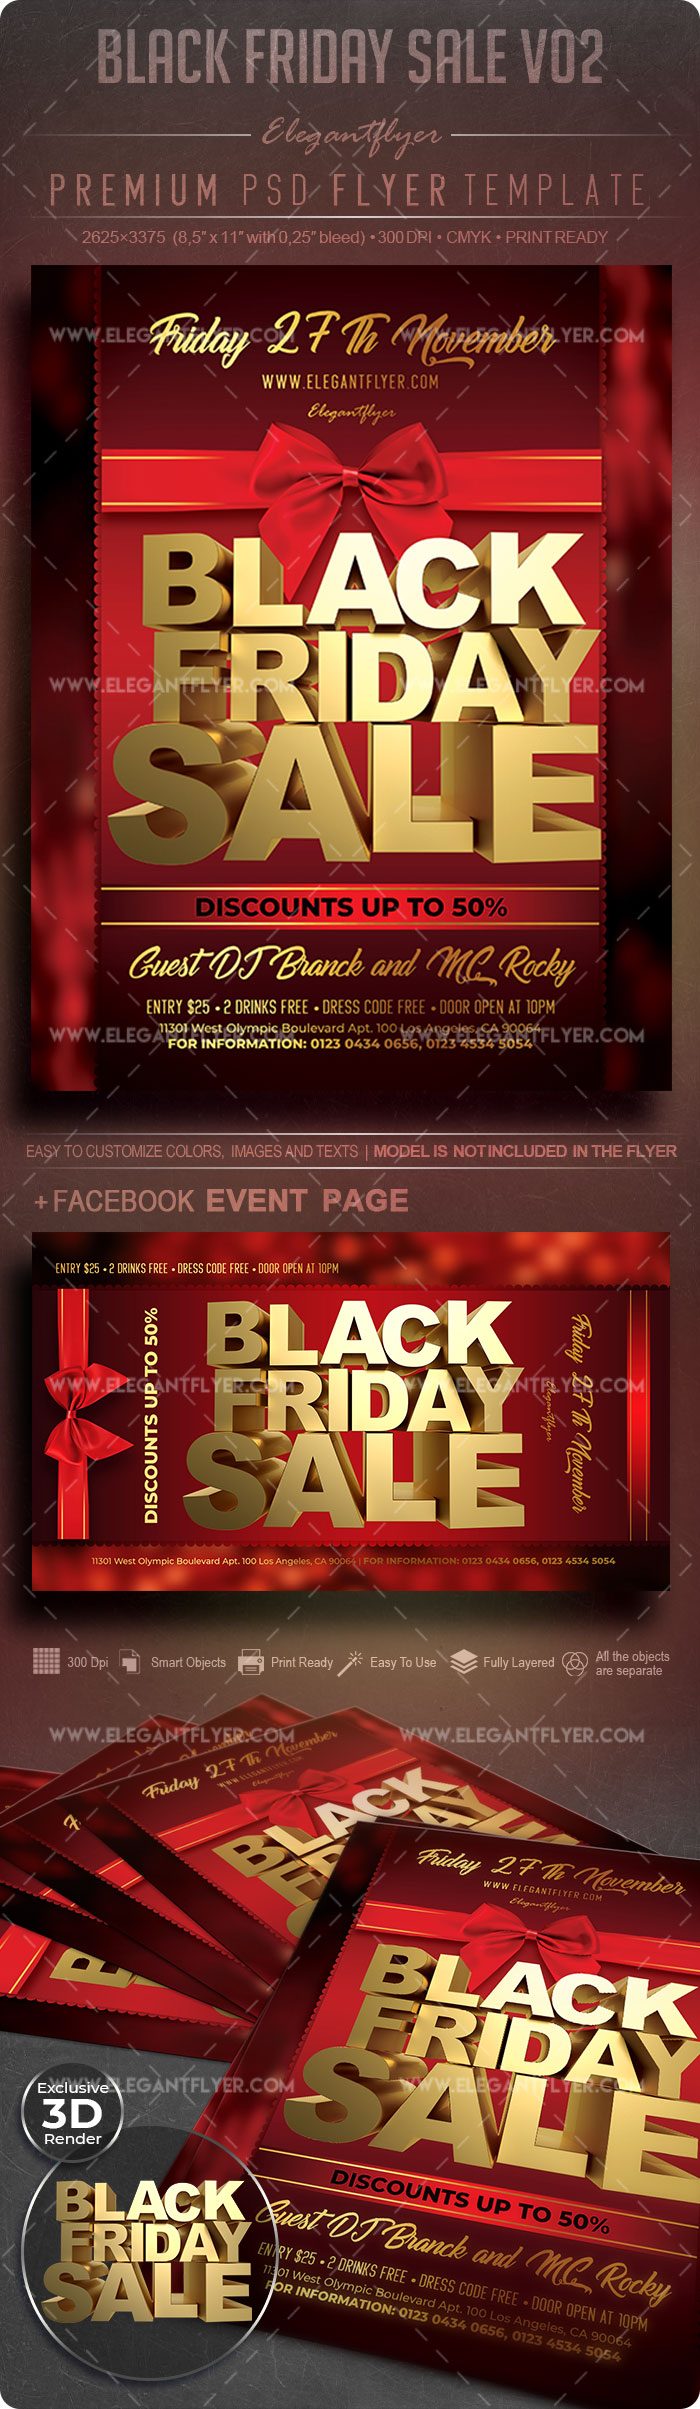 Black Friday Sale V02 – Flyer PSD Template